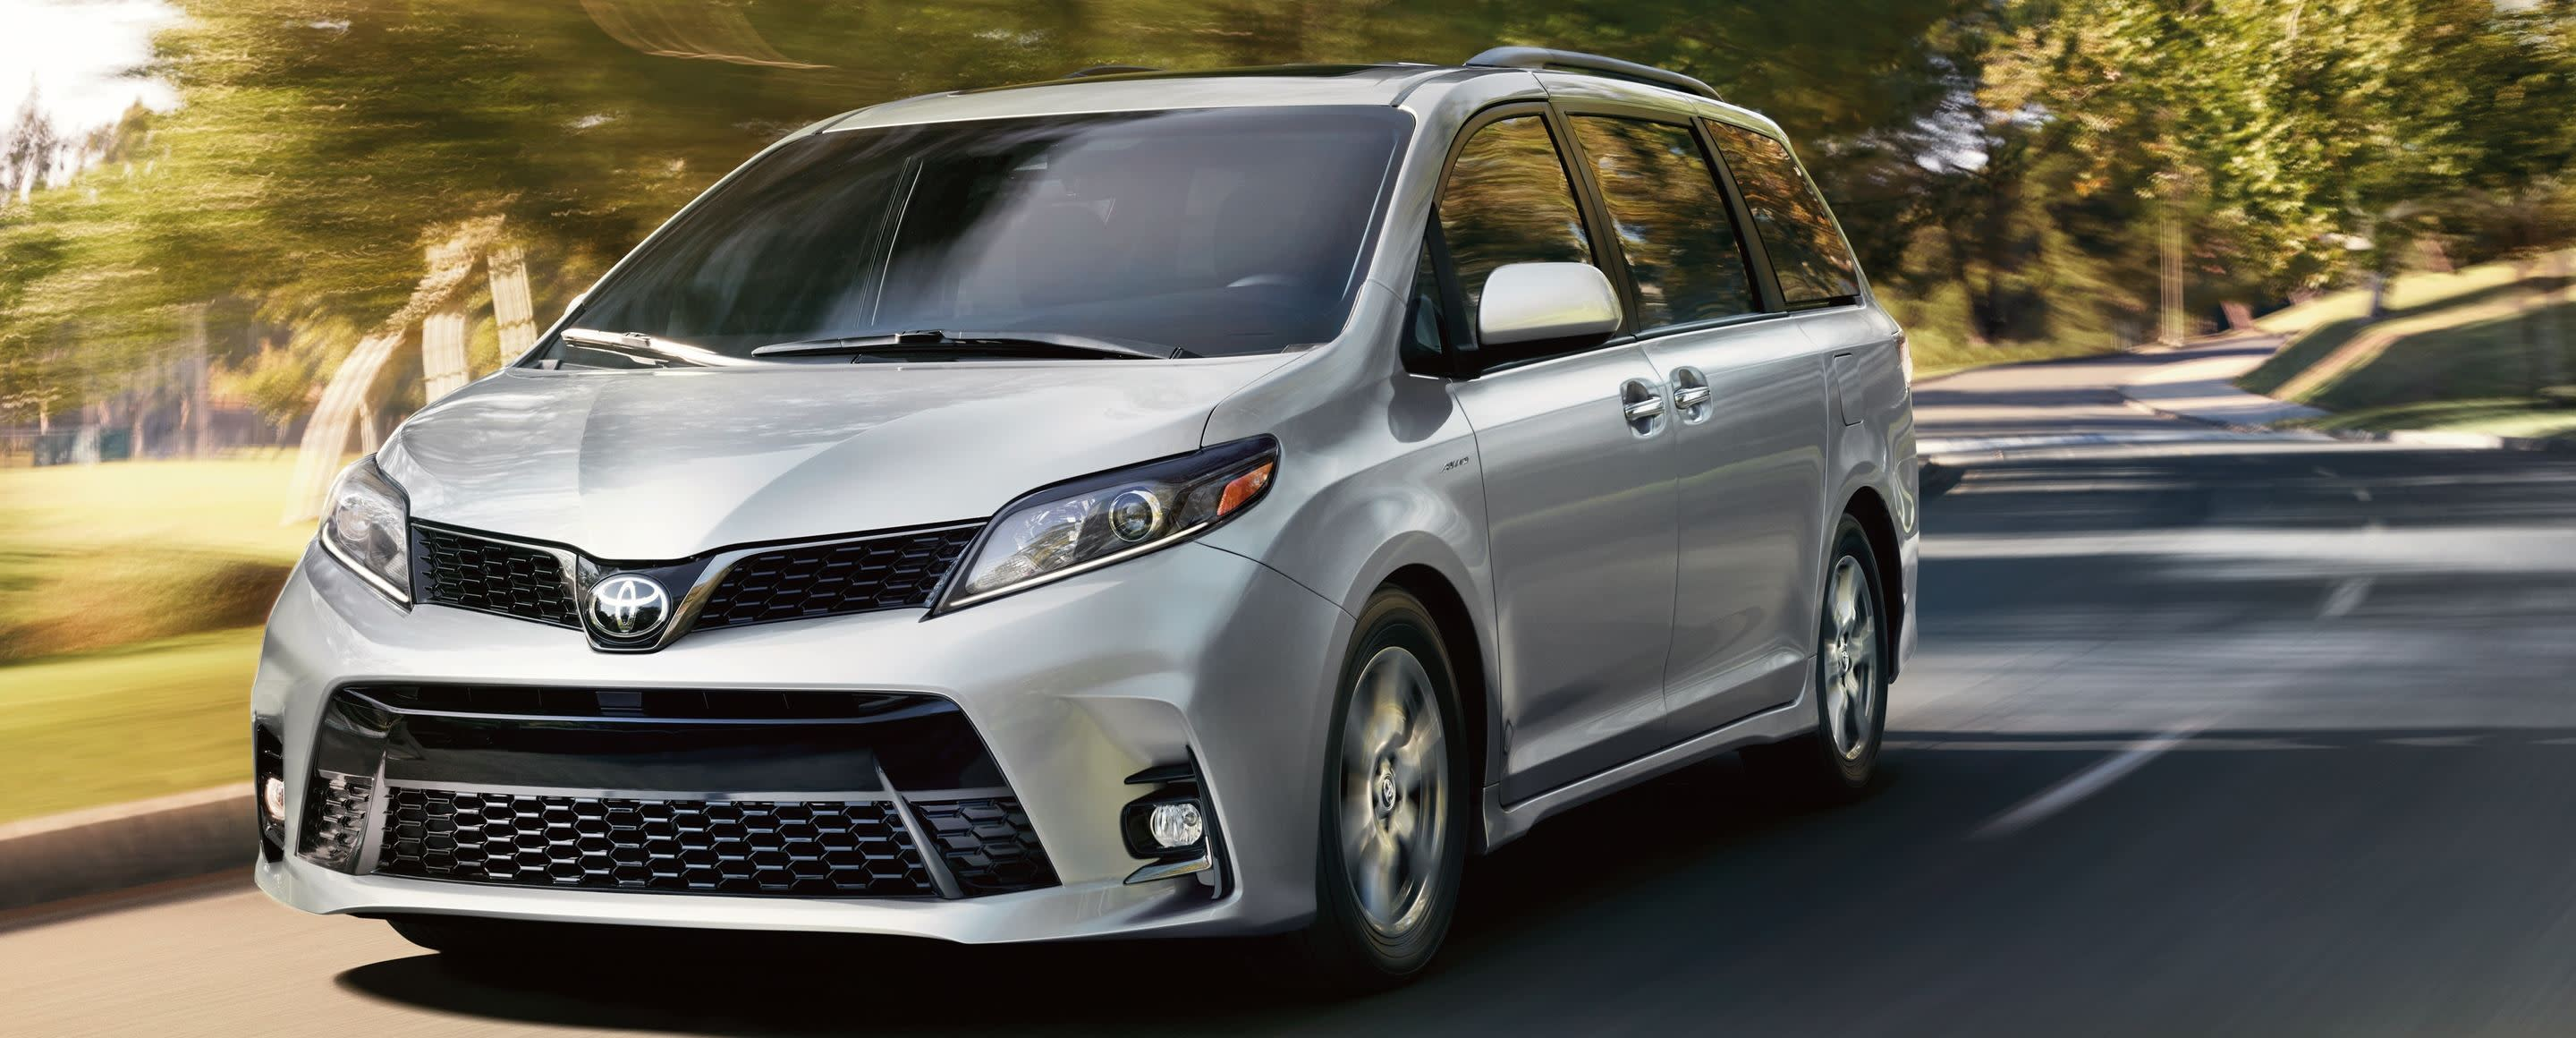 2020 Toyota Sienna for Sale near Elmhurst, IL